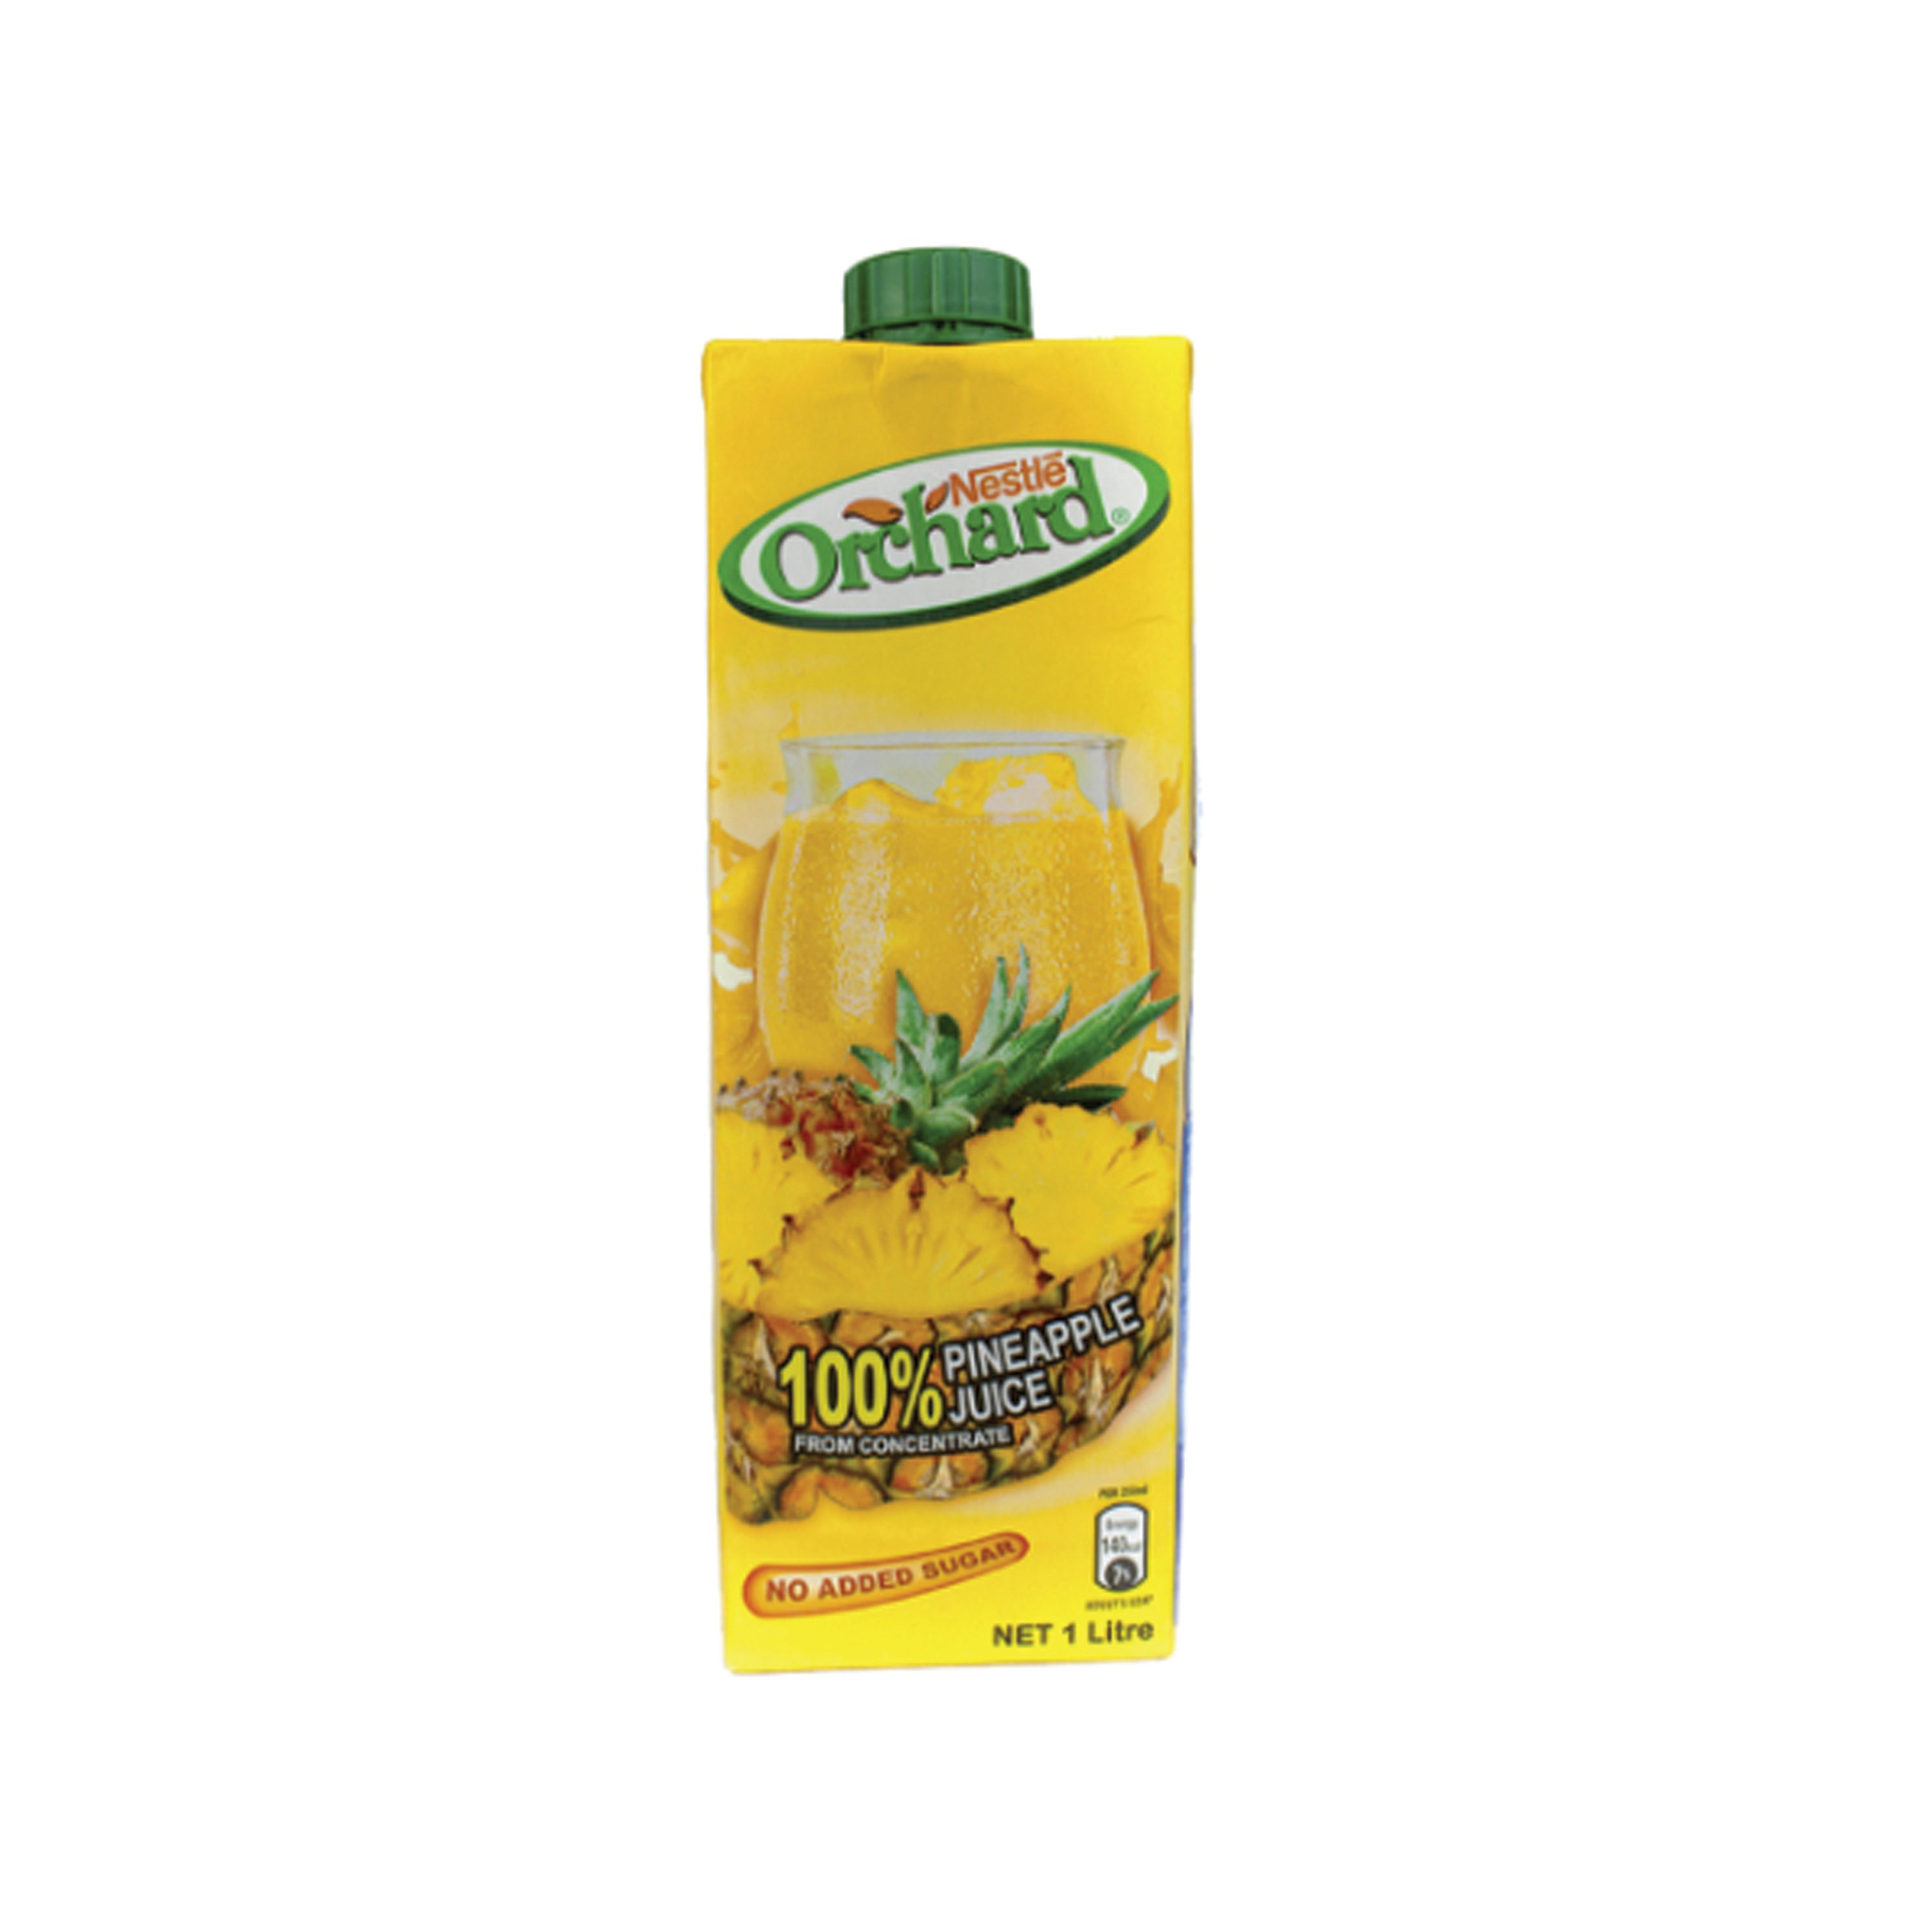 Orchard Pineapple Juice 1L